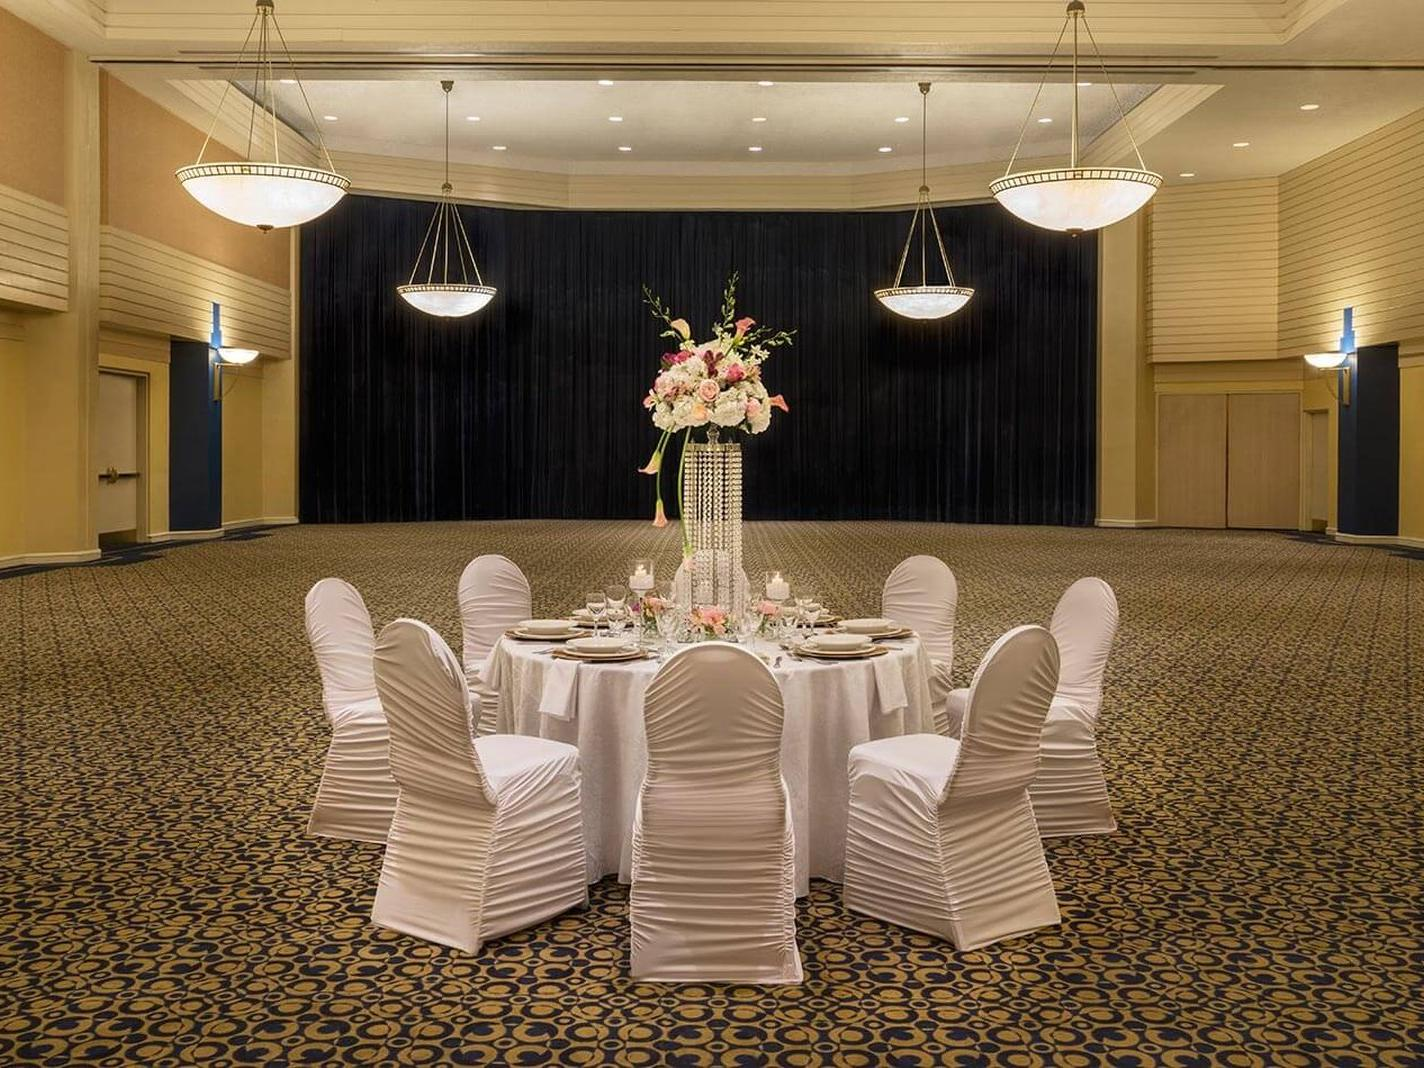 Spacious ballroom at hotel